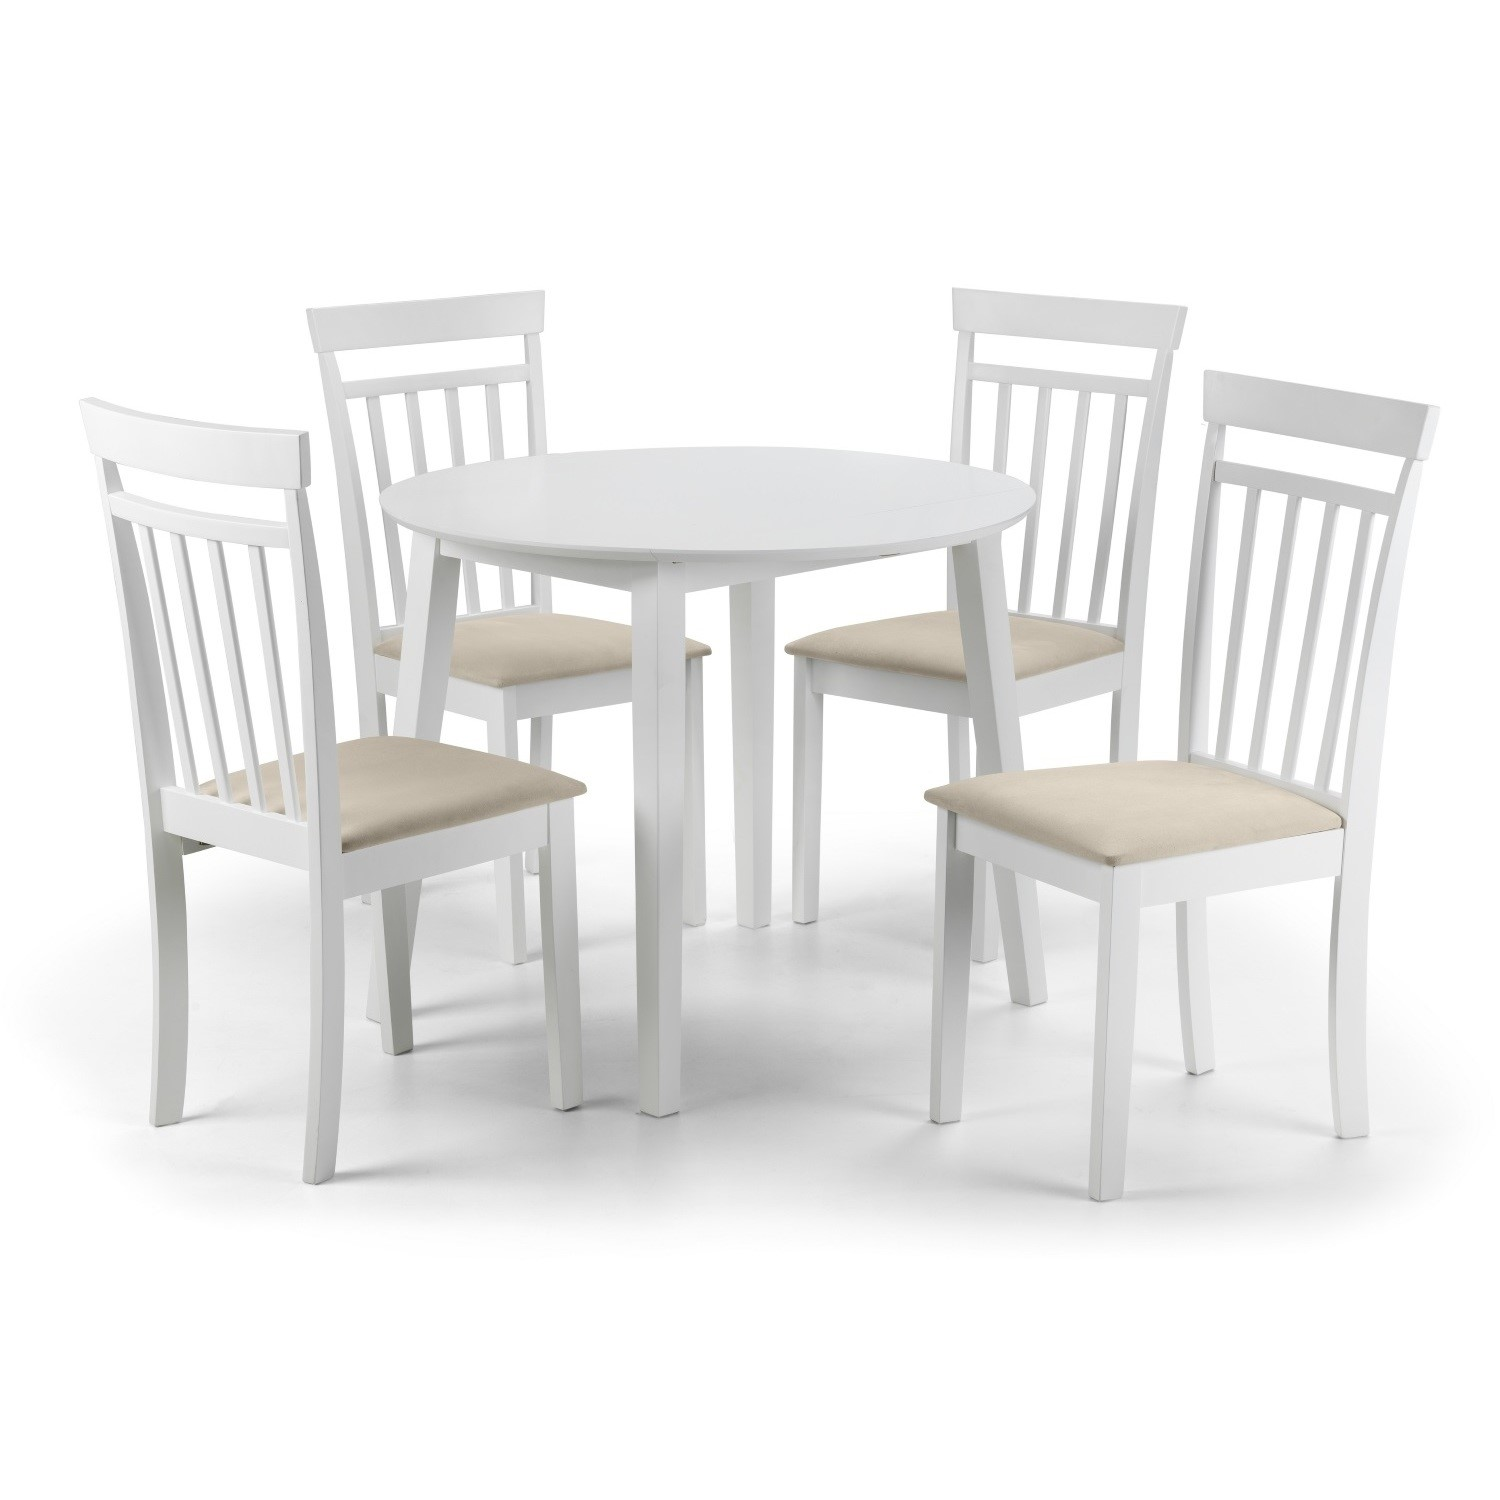 Julian Bowen Coast White Dining Set With Round Table 4 Chairs Furniture123